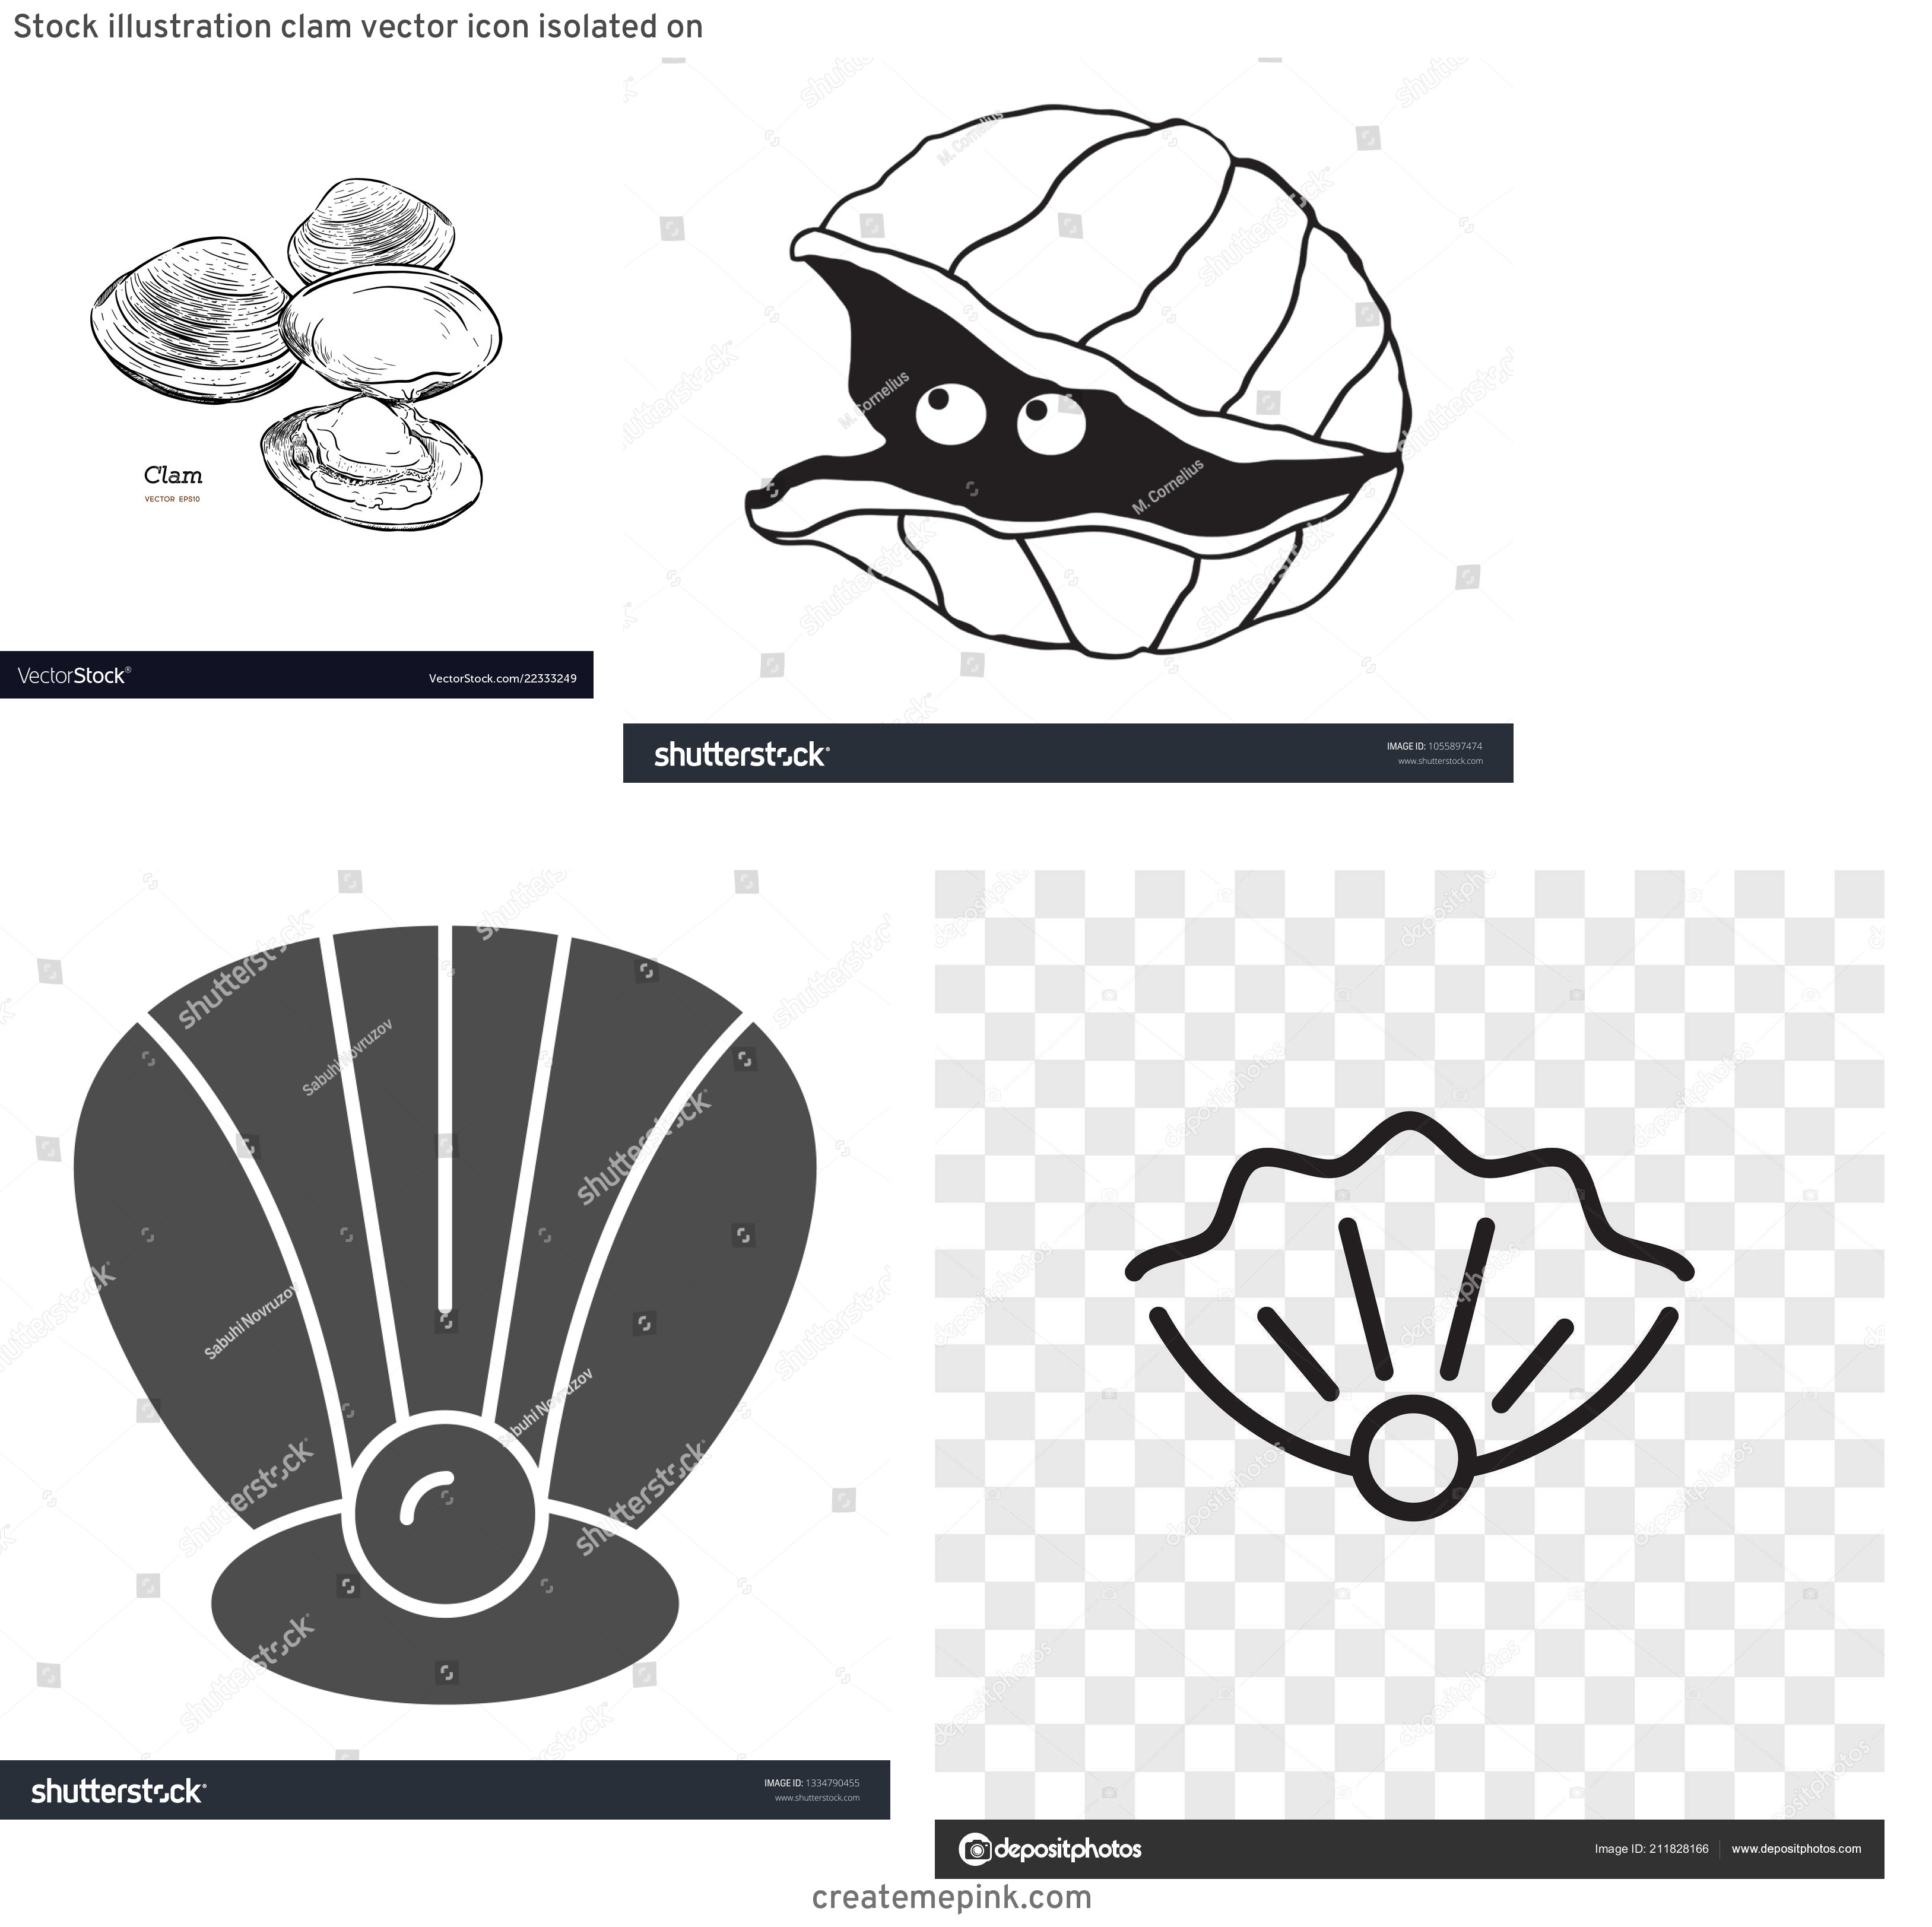 Clam Vector: Stock Illustration Clam Vector Icon Isolated On